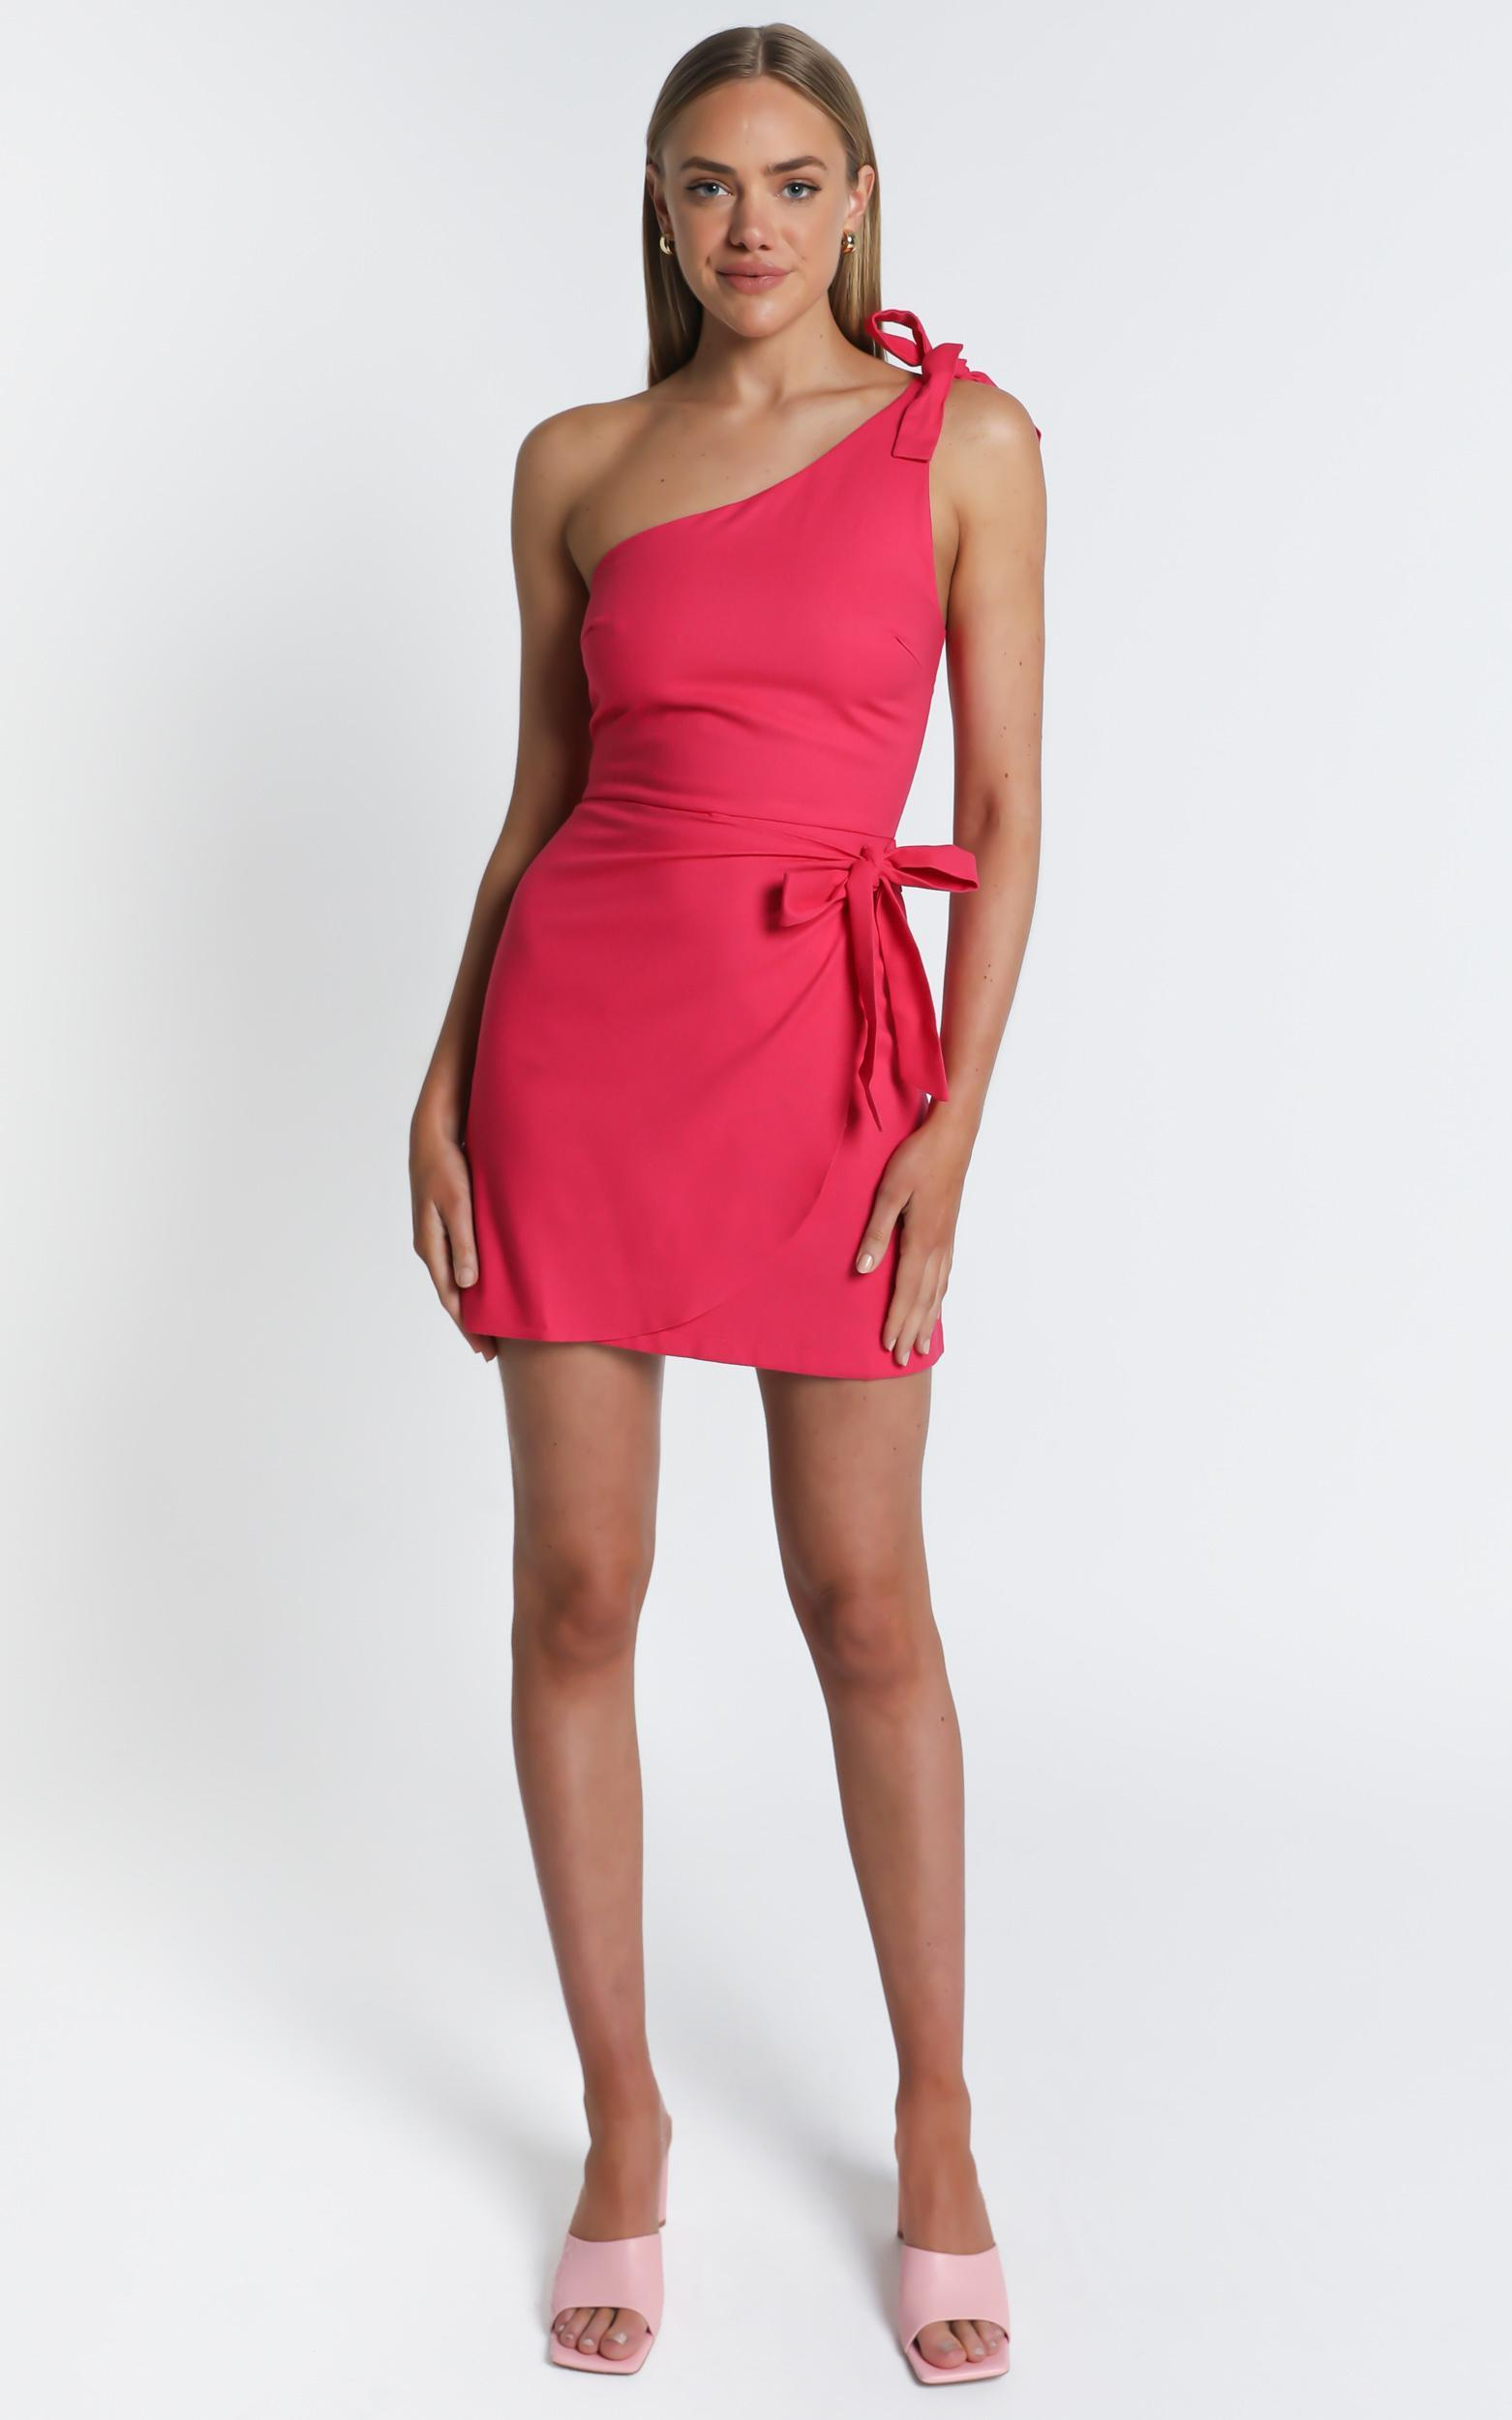 Keeping It Together Dress in berry linen look - 20 (XXXXL), Pink, hi-res image number null